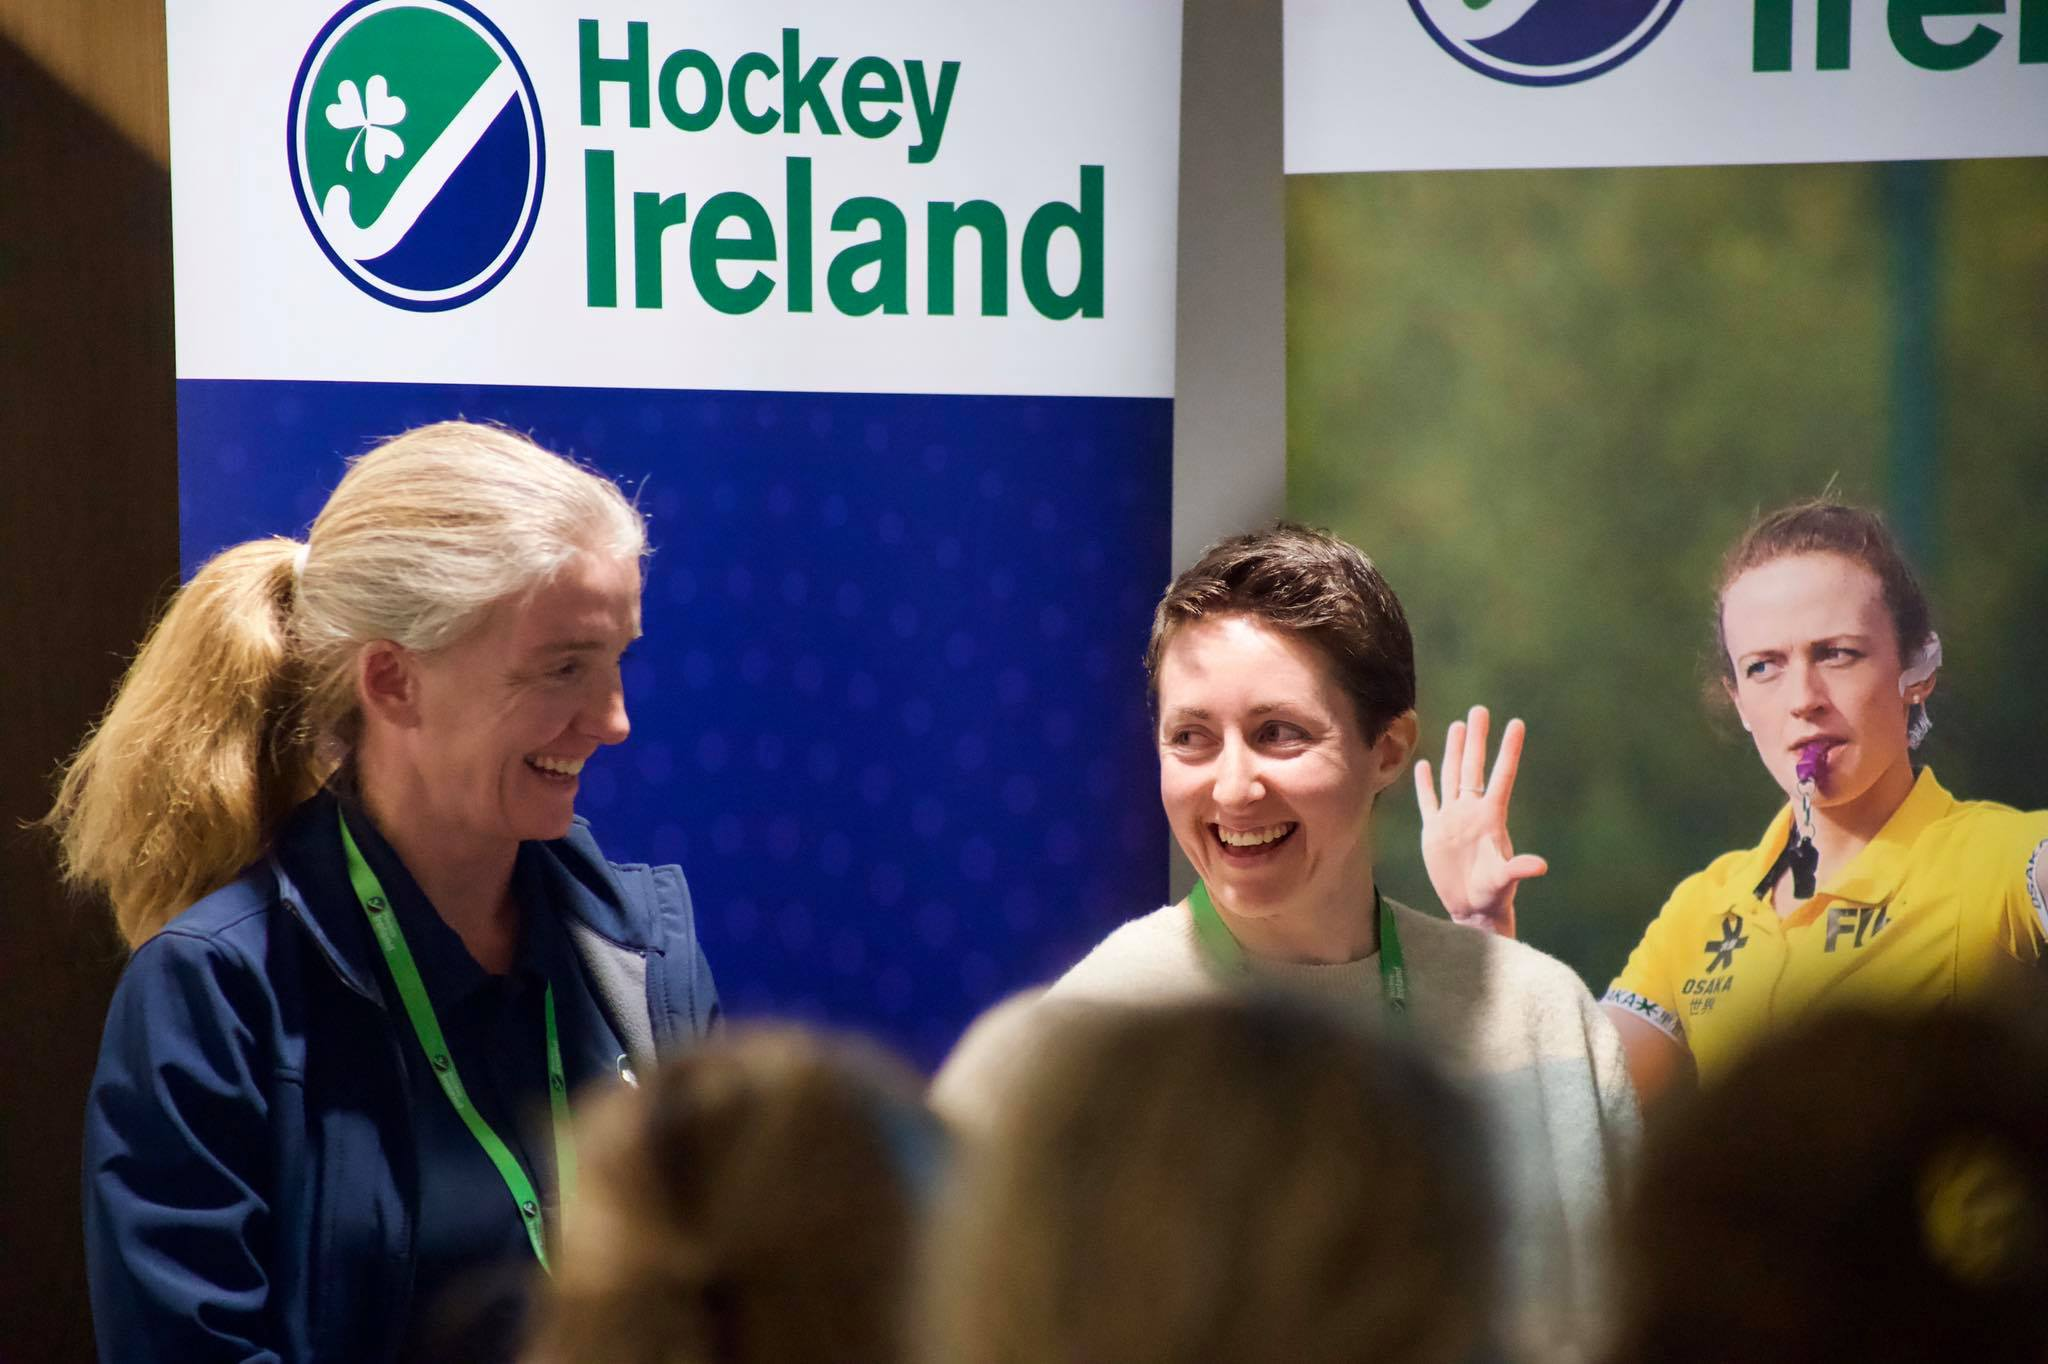 Lisa Jacobs R with Sharon Hutchinson L of Cork Harelquins at the 2019 Hockey Ireland WIS conference